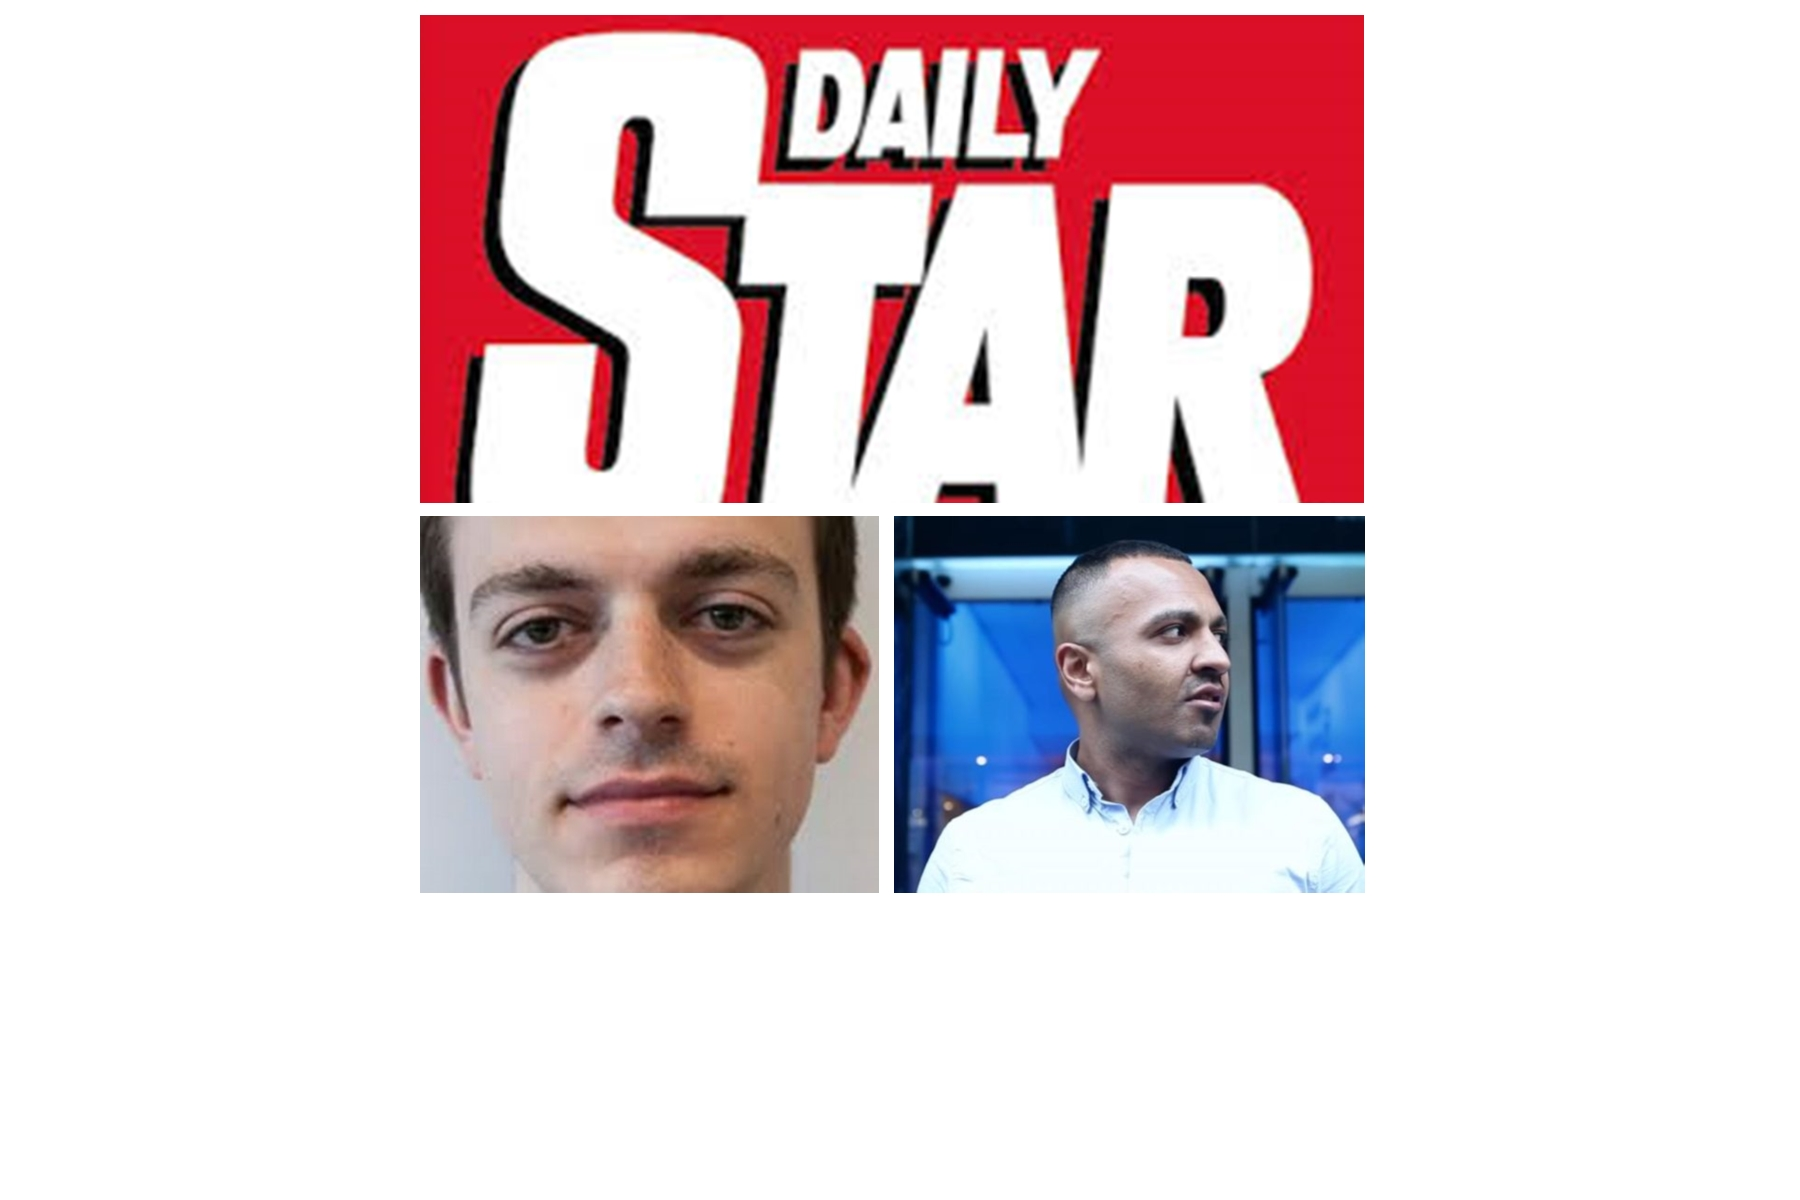 "Creep Predator Reporter Connor Gordon (Daily Star) Targets Innocent Man Agame Writing Story About Him ""Facing Jail/Locked Up"""